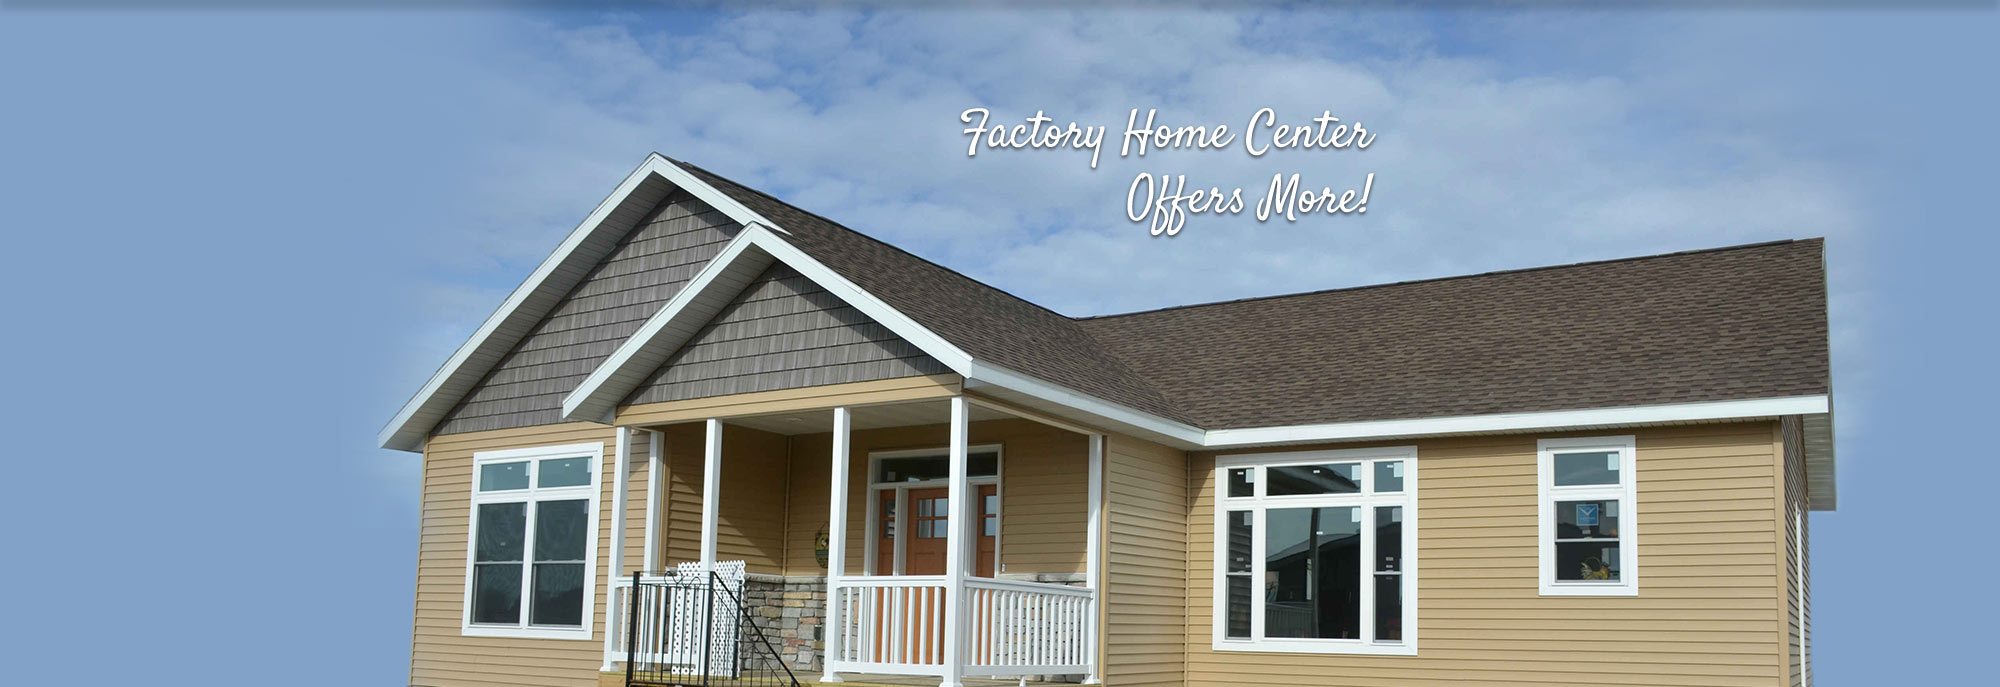 Exterior of Modular Home built by Factory Home Center